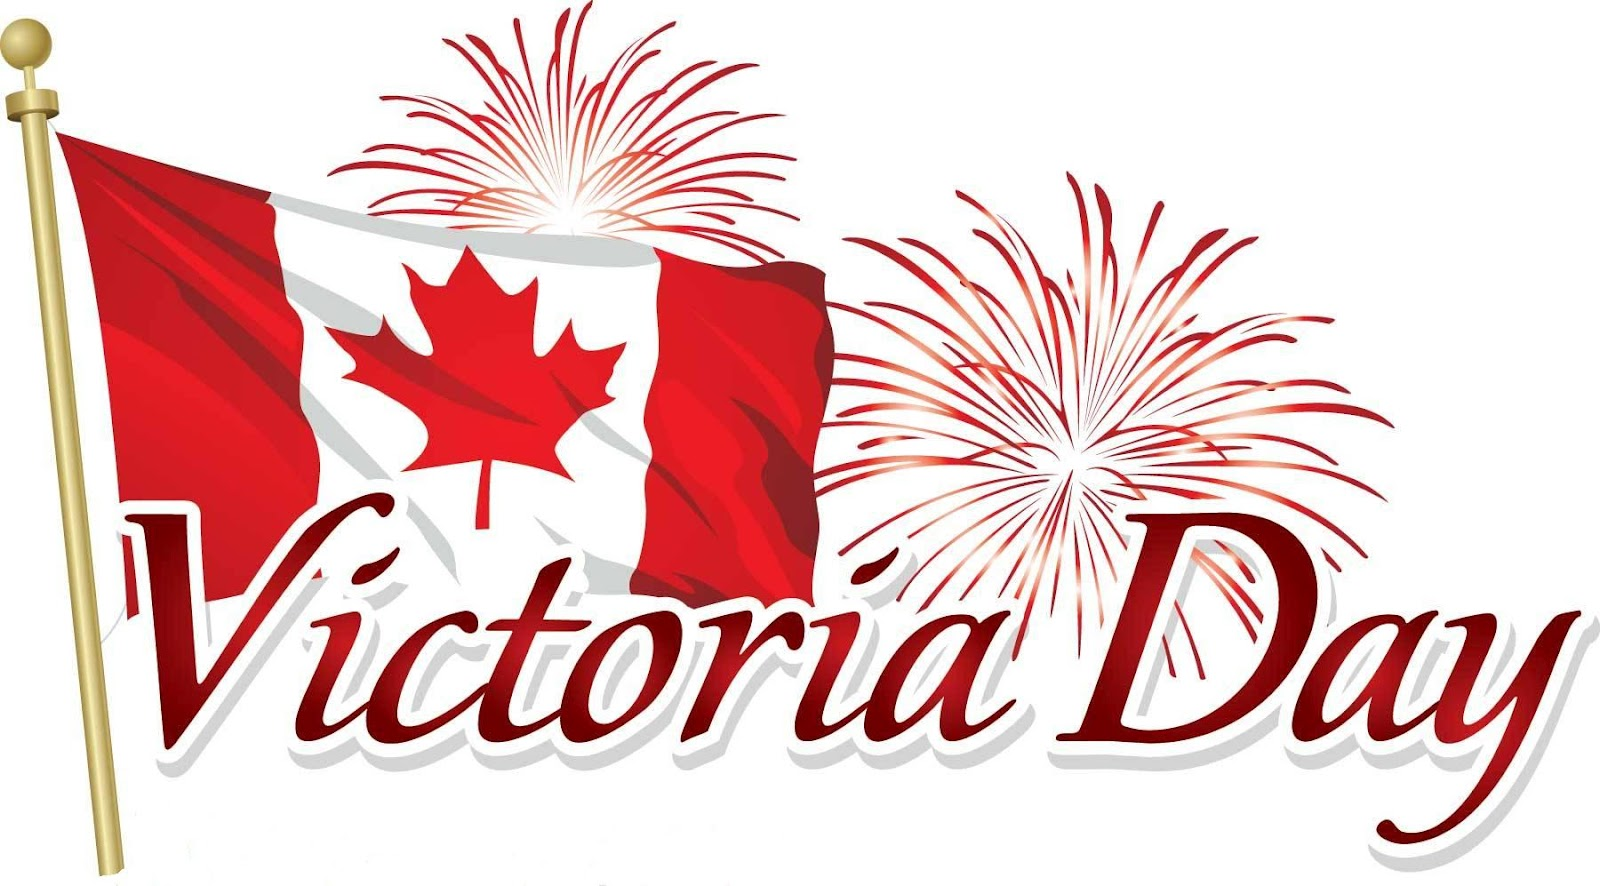 Victoria Day Canada May 20th 2013